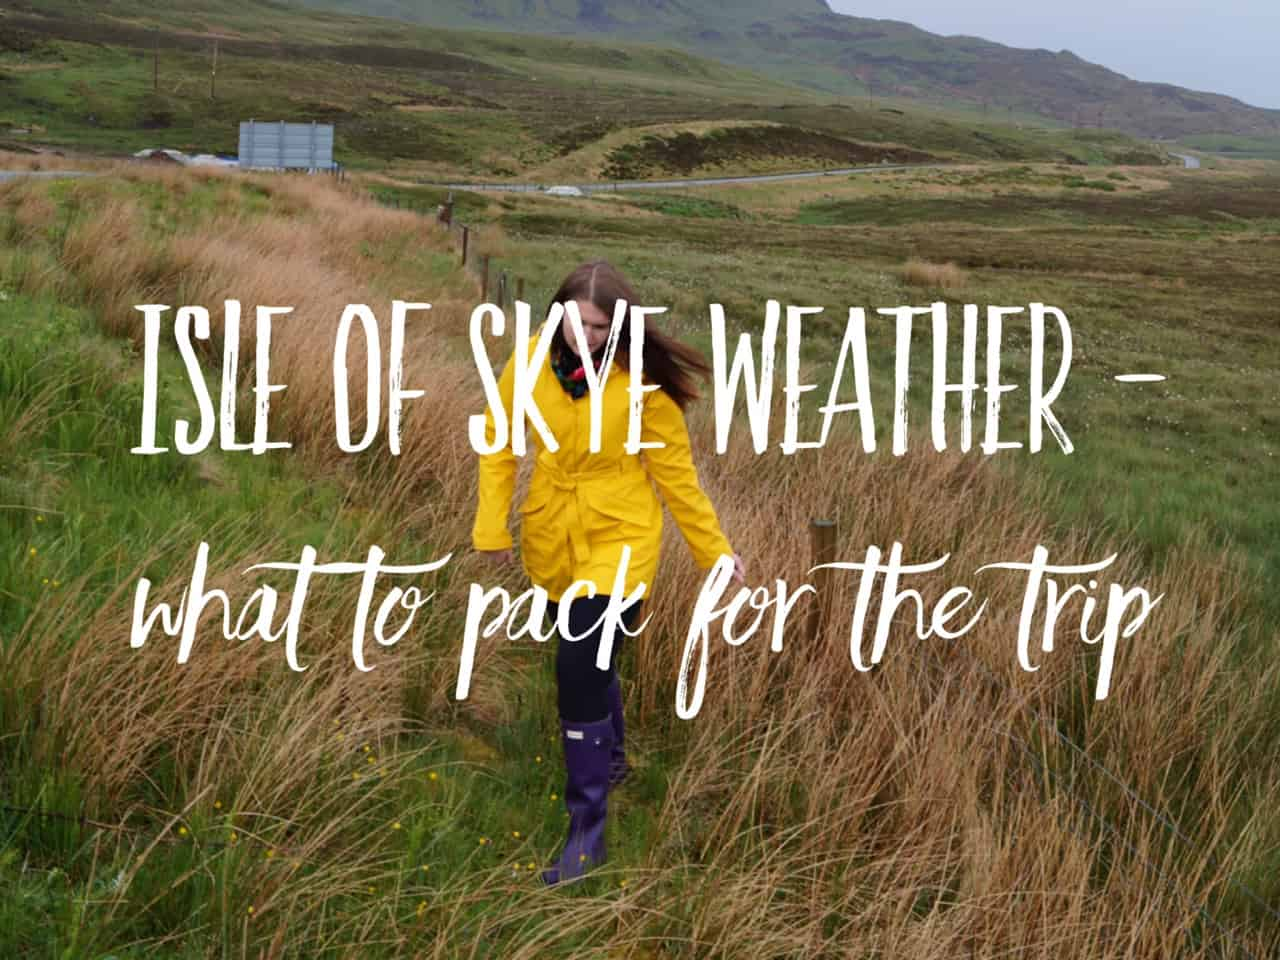 Isle of Skye weather – what to pack for the Isle of Skye trip